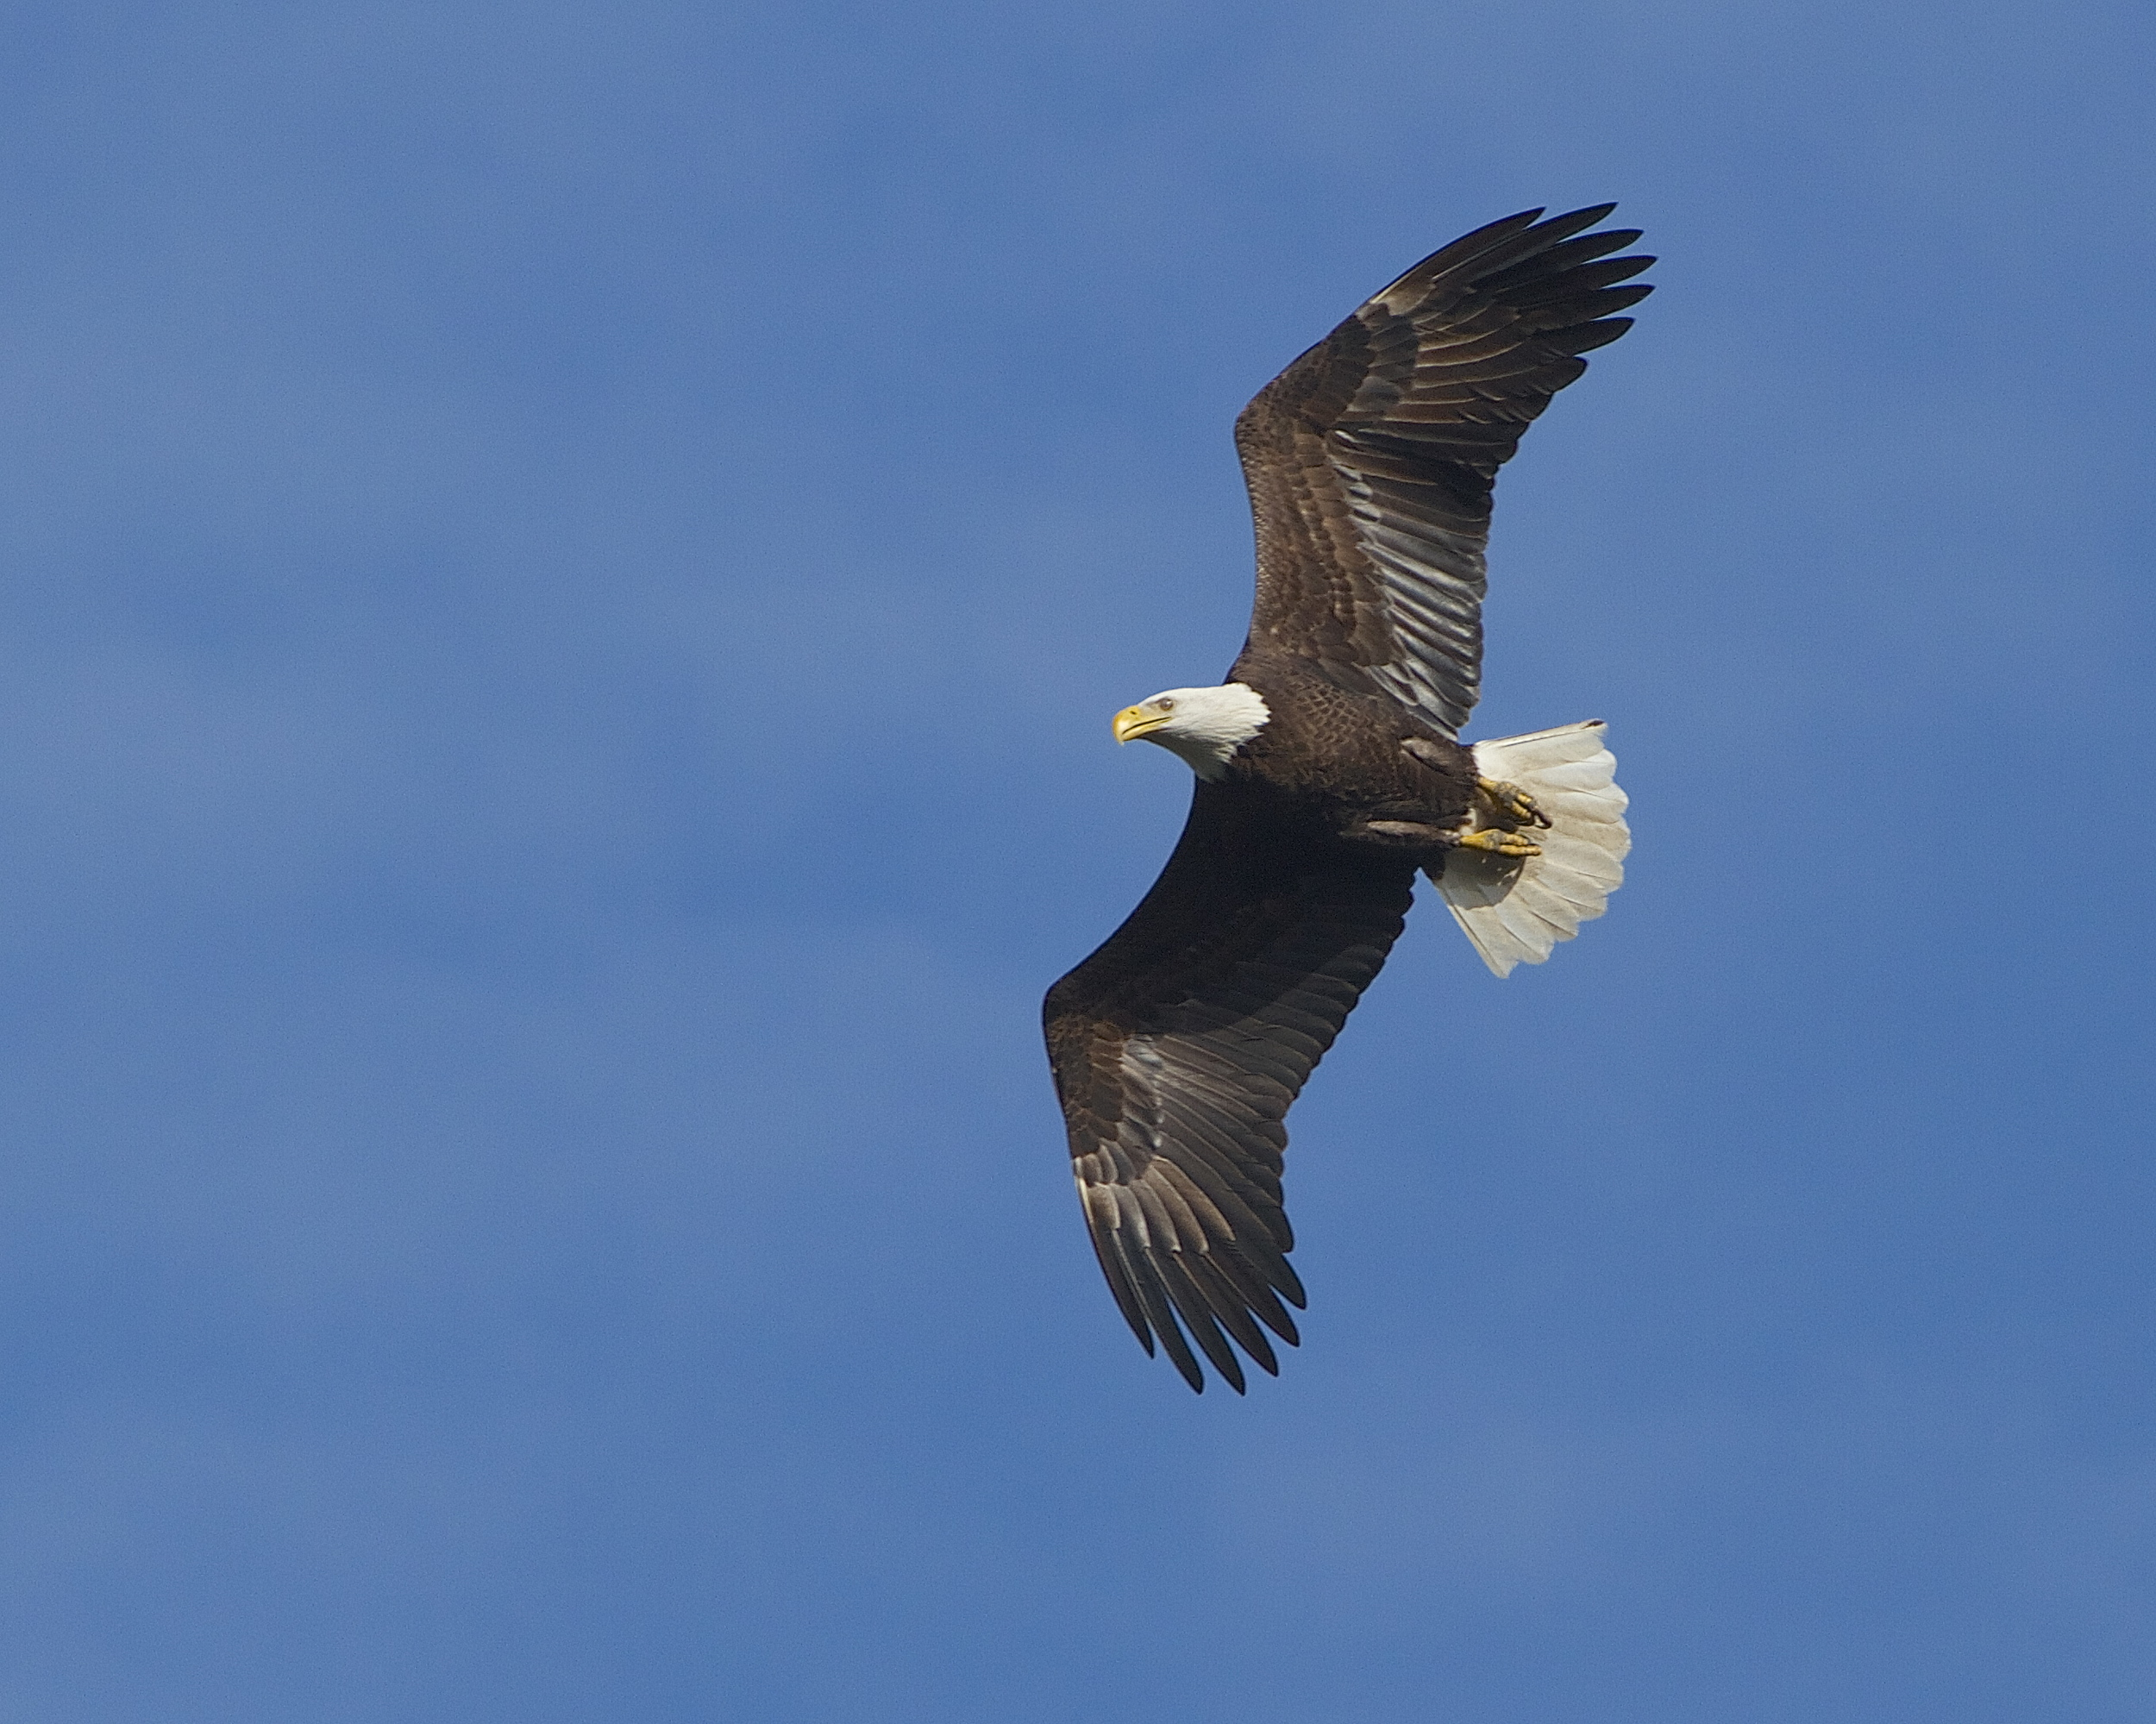 A Majestic Bald Eagle soars over the pond. Hmmm, those duck look delicious..